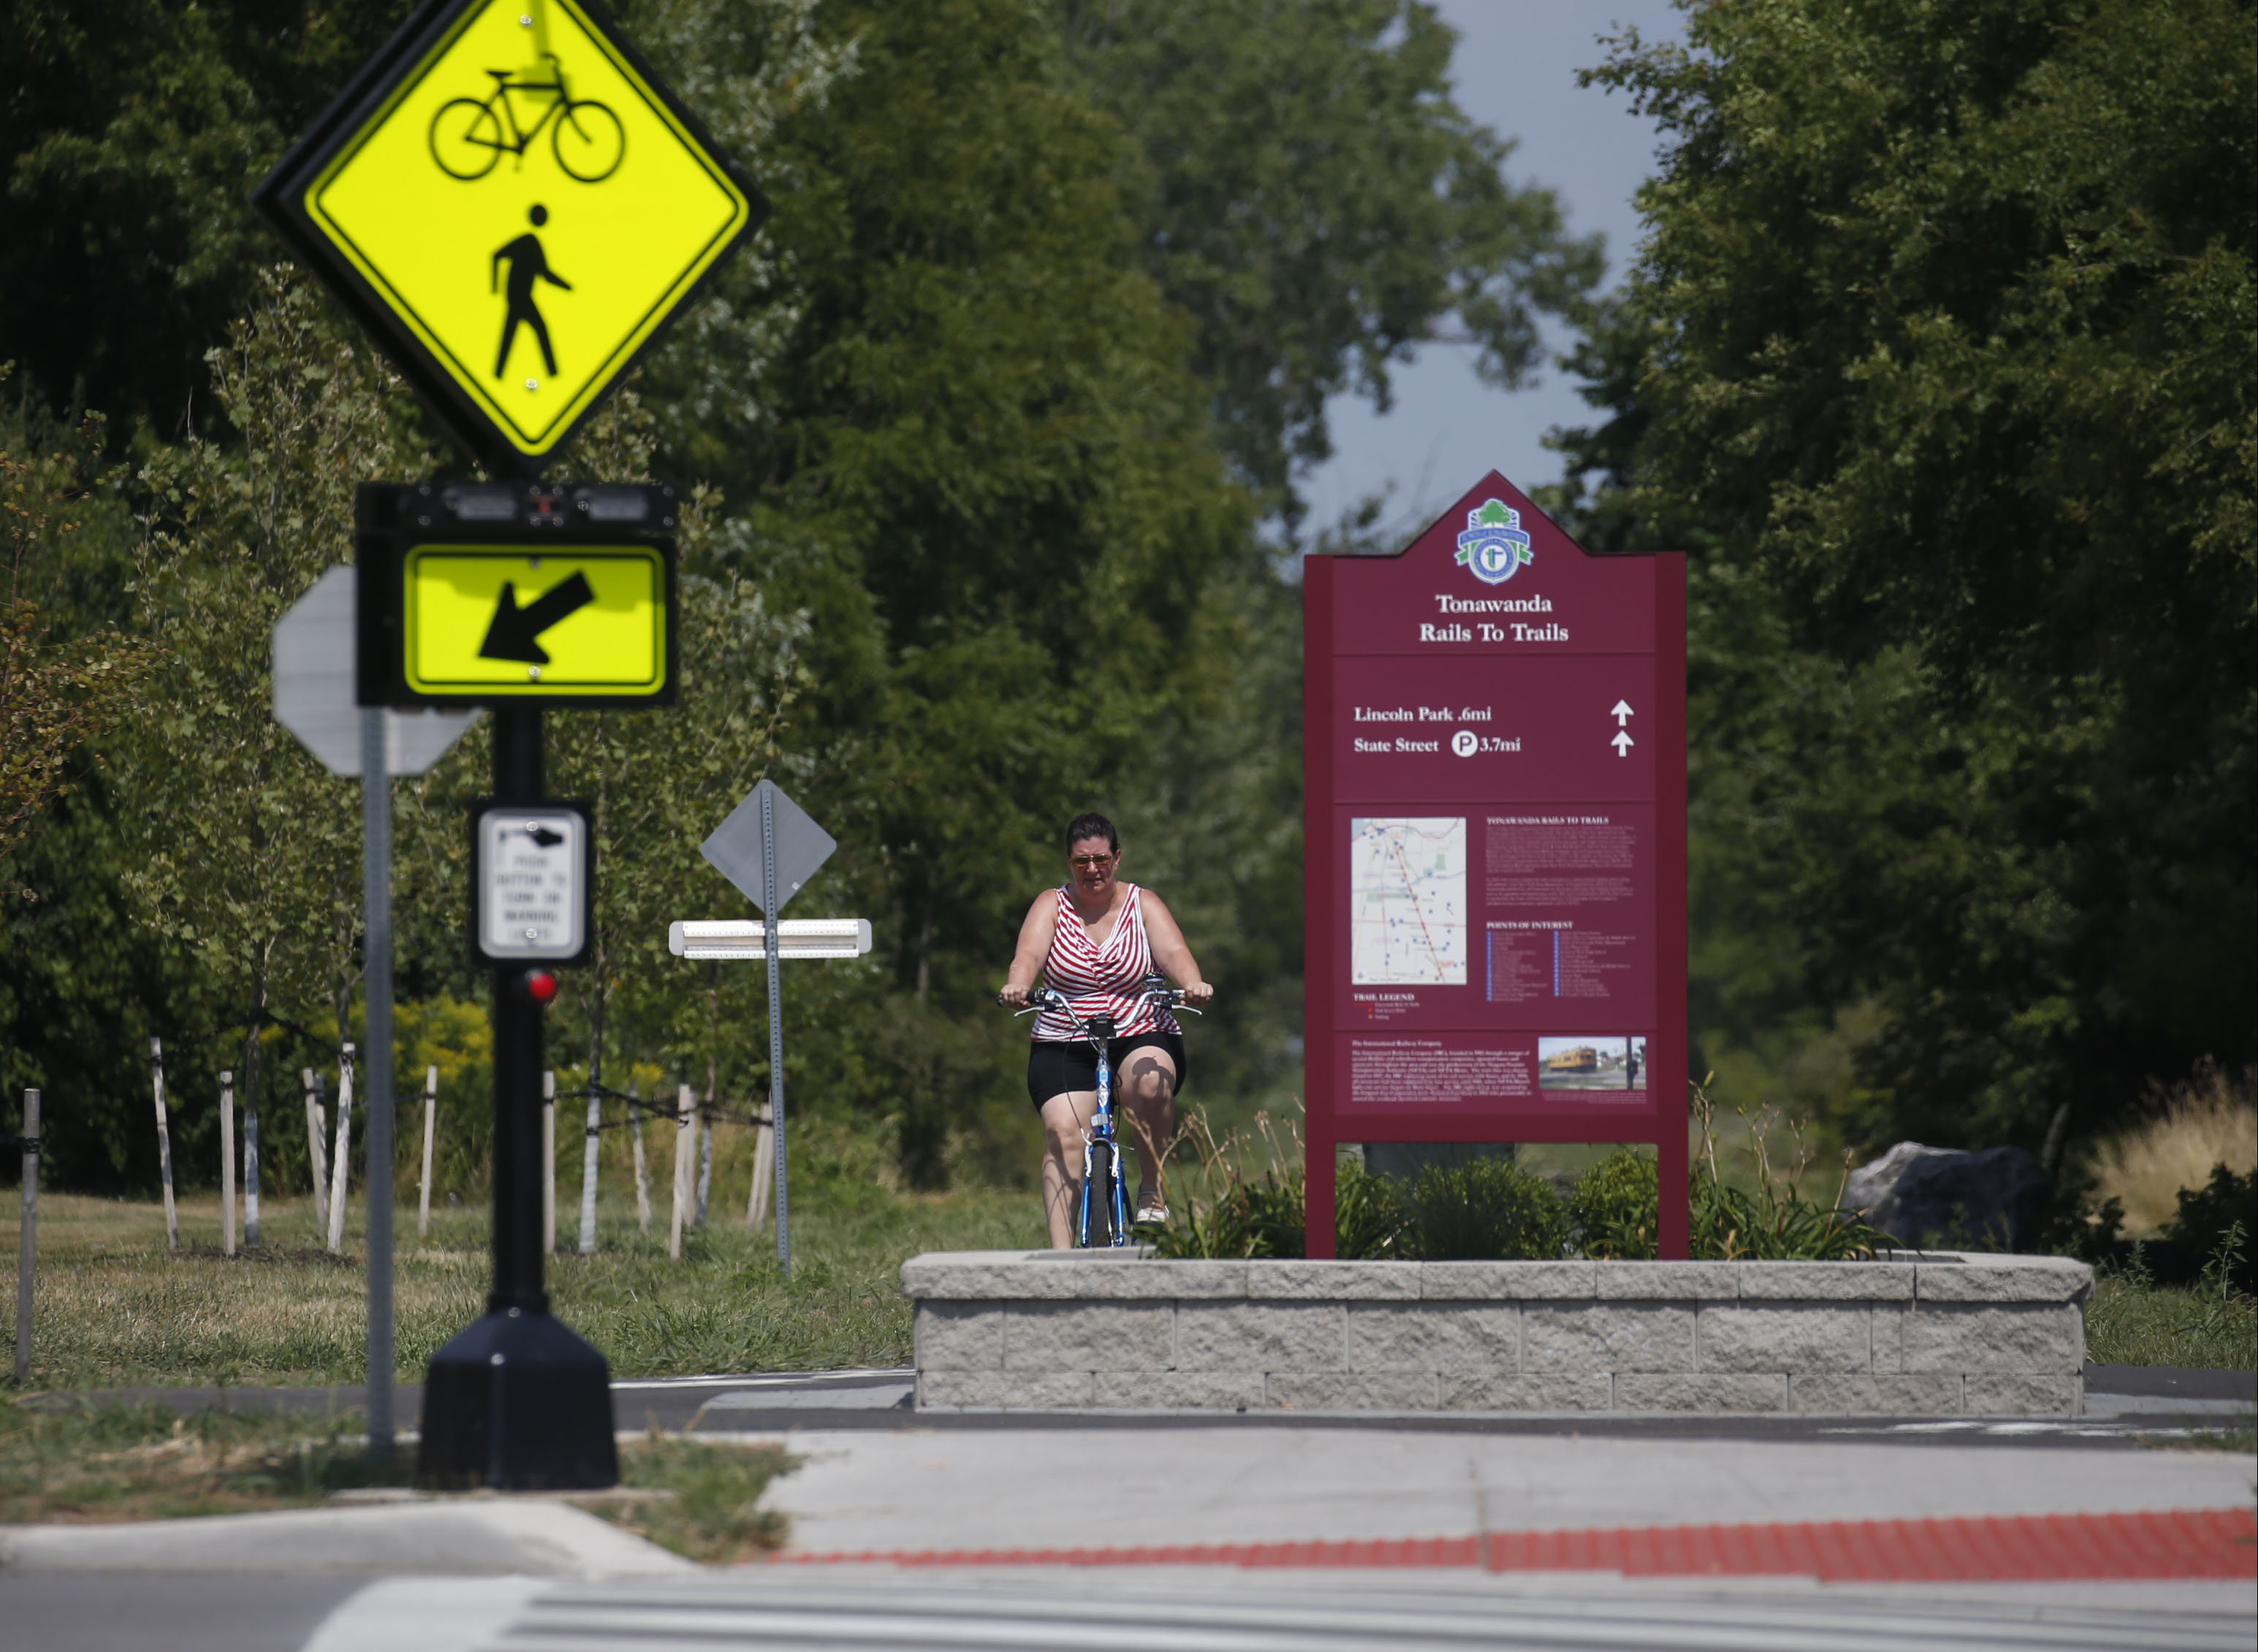 Amy Kempf, of Buffalo, on her bike waits to cross on Englewood Avenue near Parker Boulevard on the Tonawanda Rails to Trails section on Thursday, Aug. 11, 2016. (Robert Kirkham/Buffalo News)